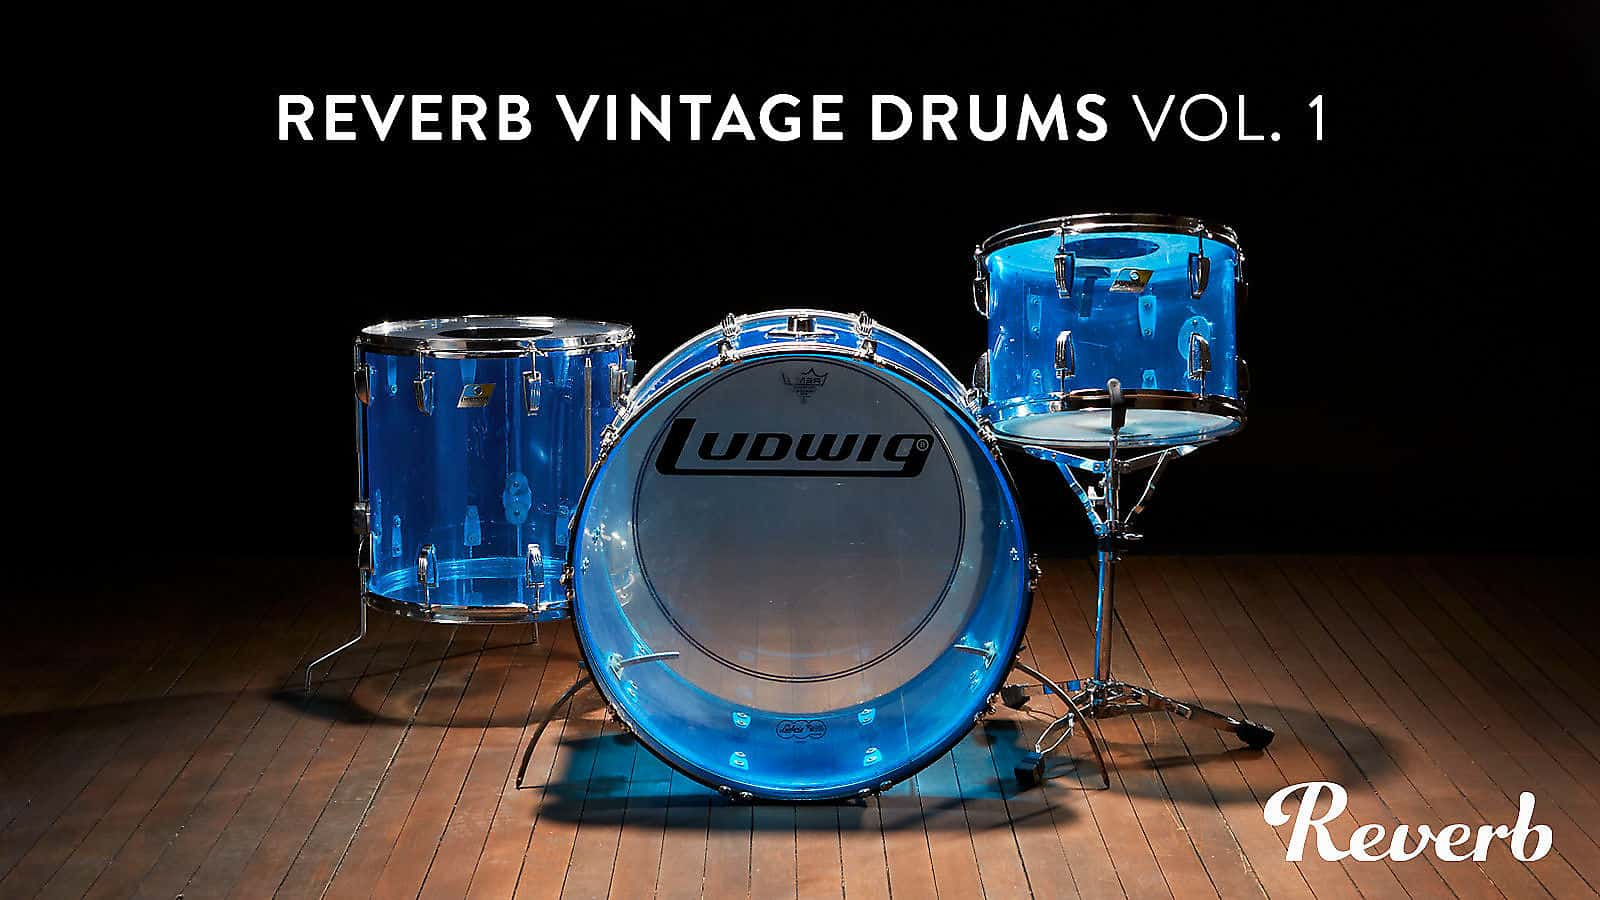 Reverb Vintage Drum Samples Vol. 1 Ludwig Drum Kits Samples & Loops Feature Image